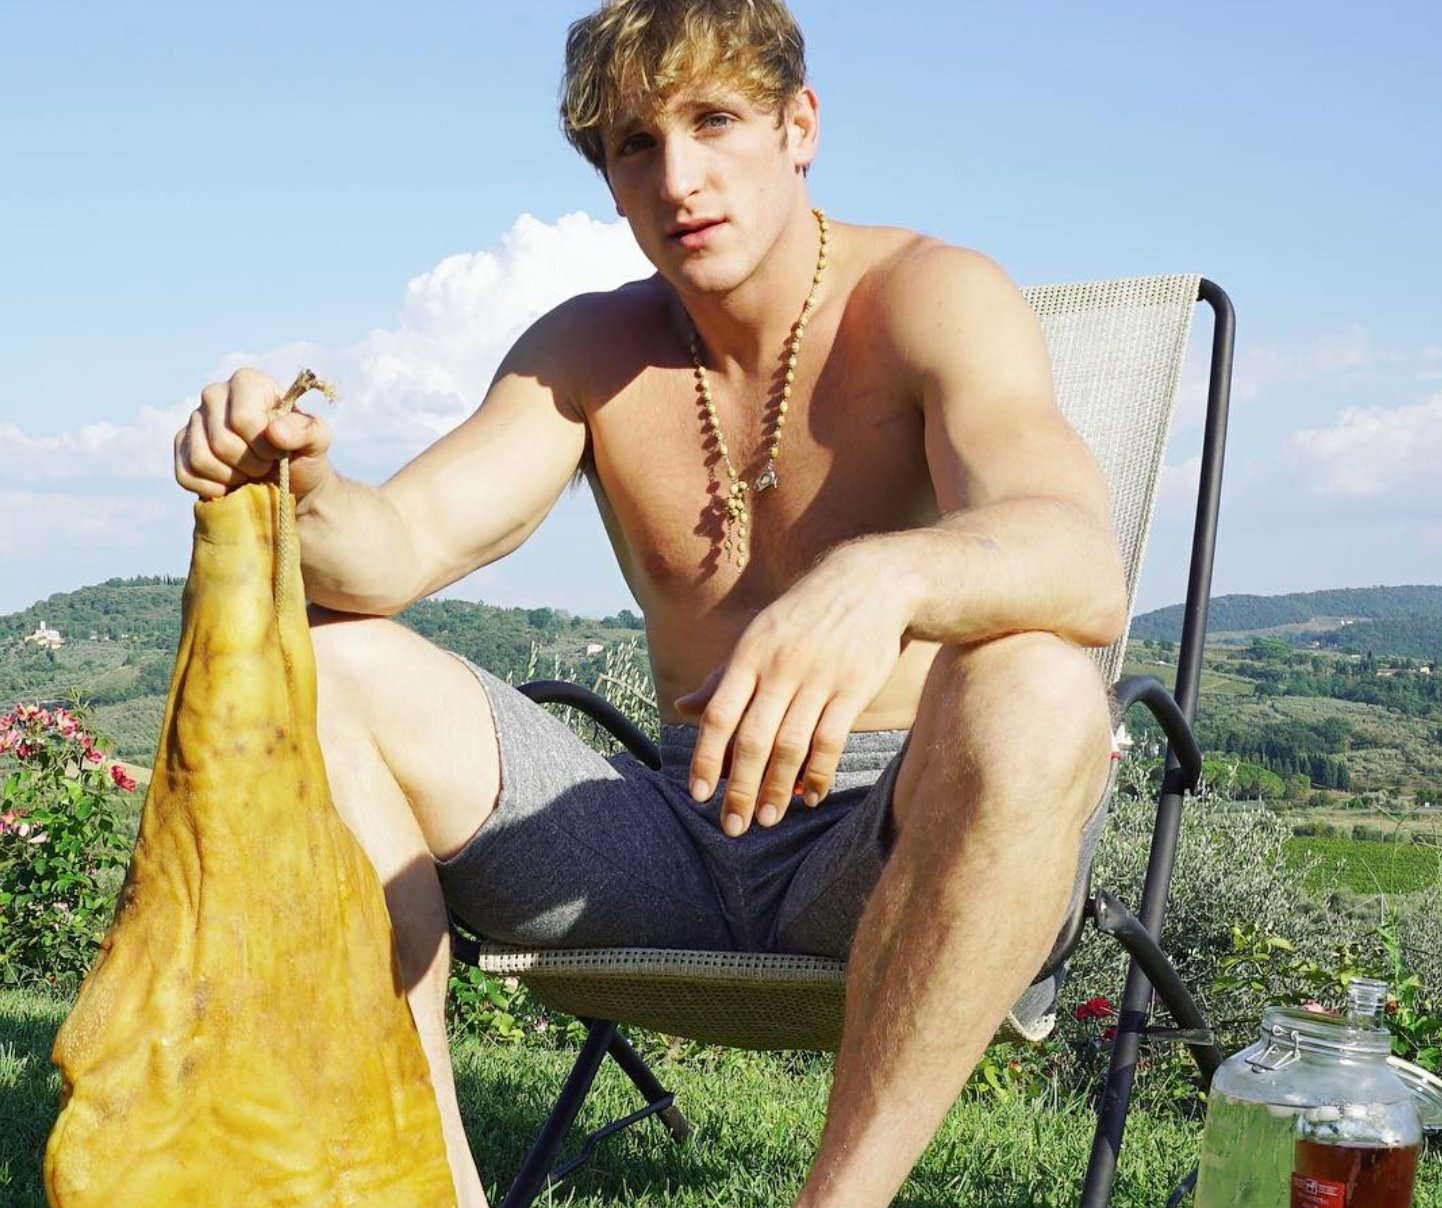 YouTuber Logan Paul poses with ham